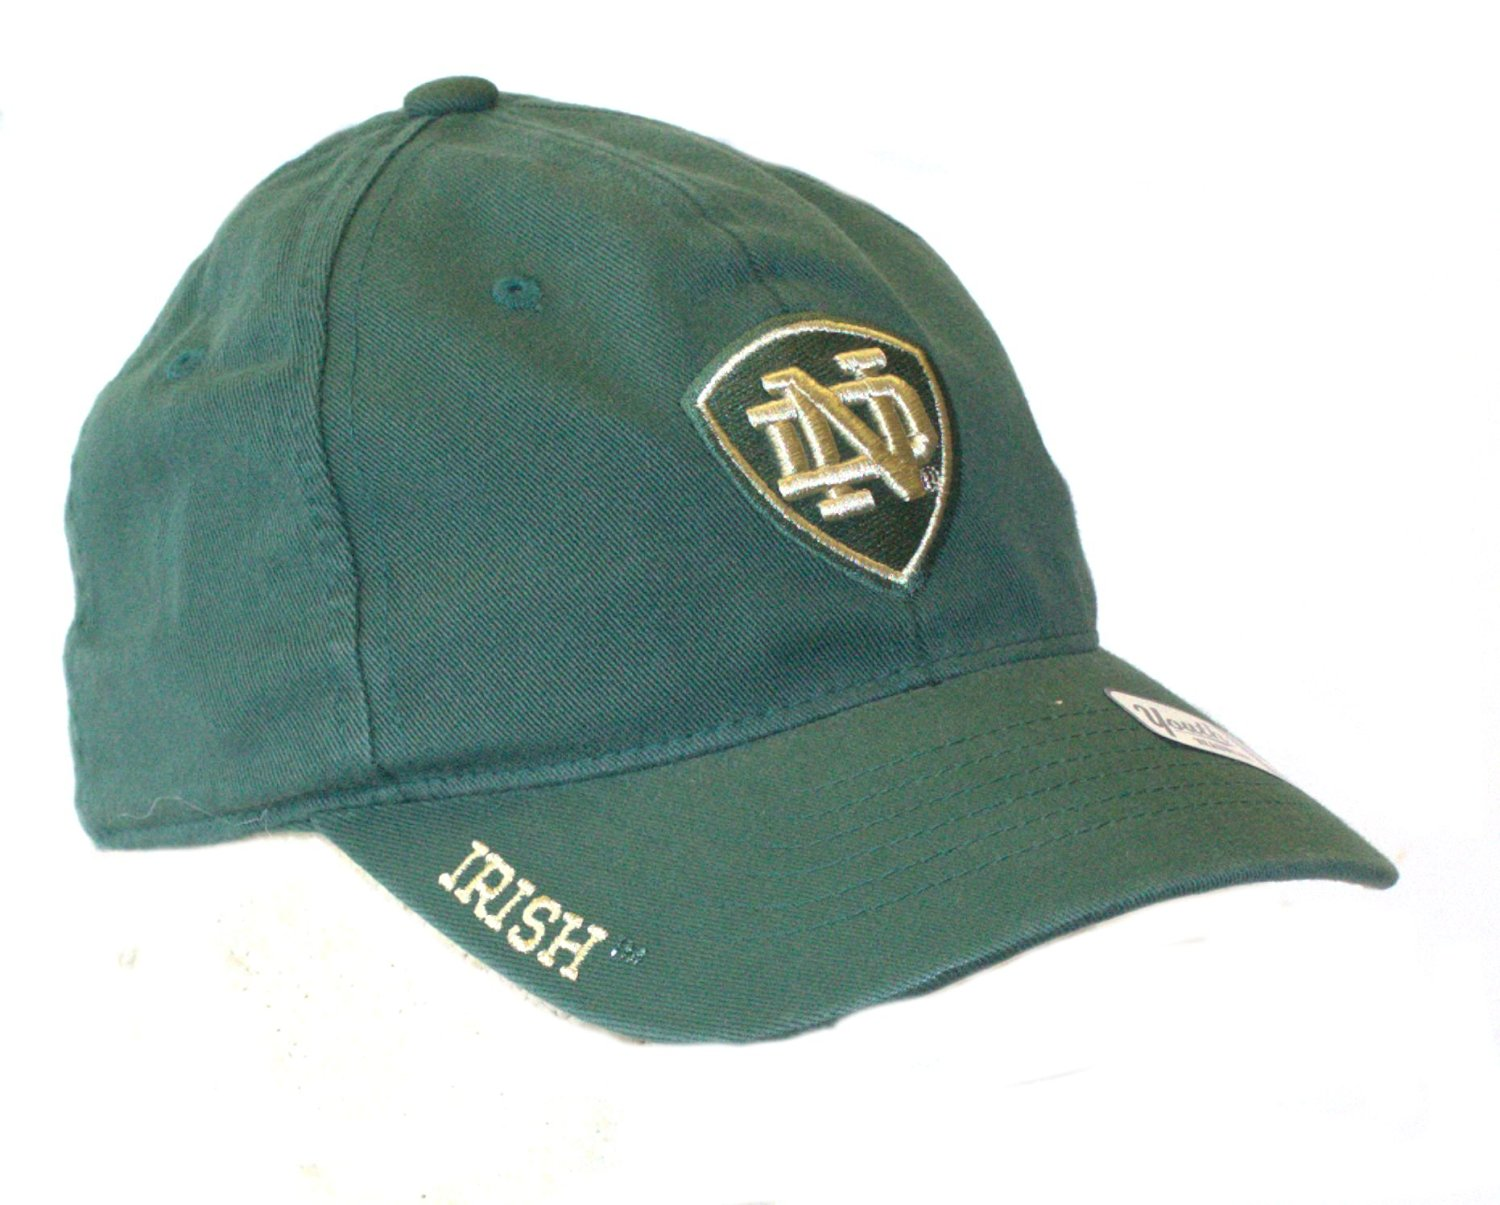 4be8648e022e6 Notre Dame YOUTH Green Stretch Fit Hat Cap Lid 683258931267